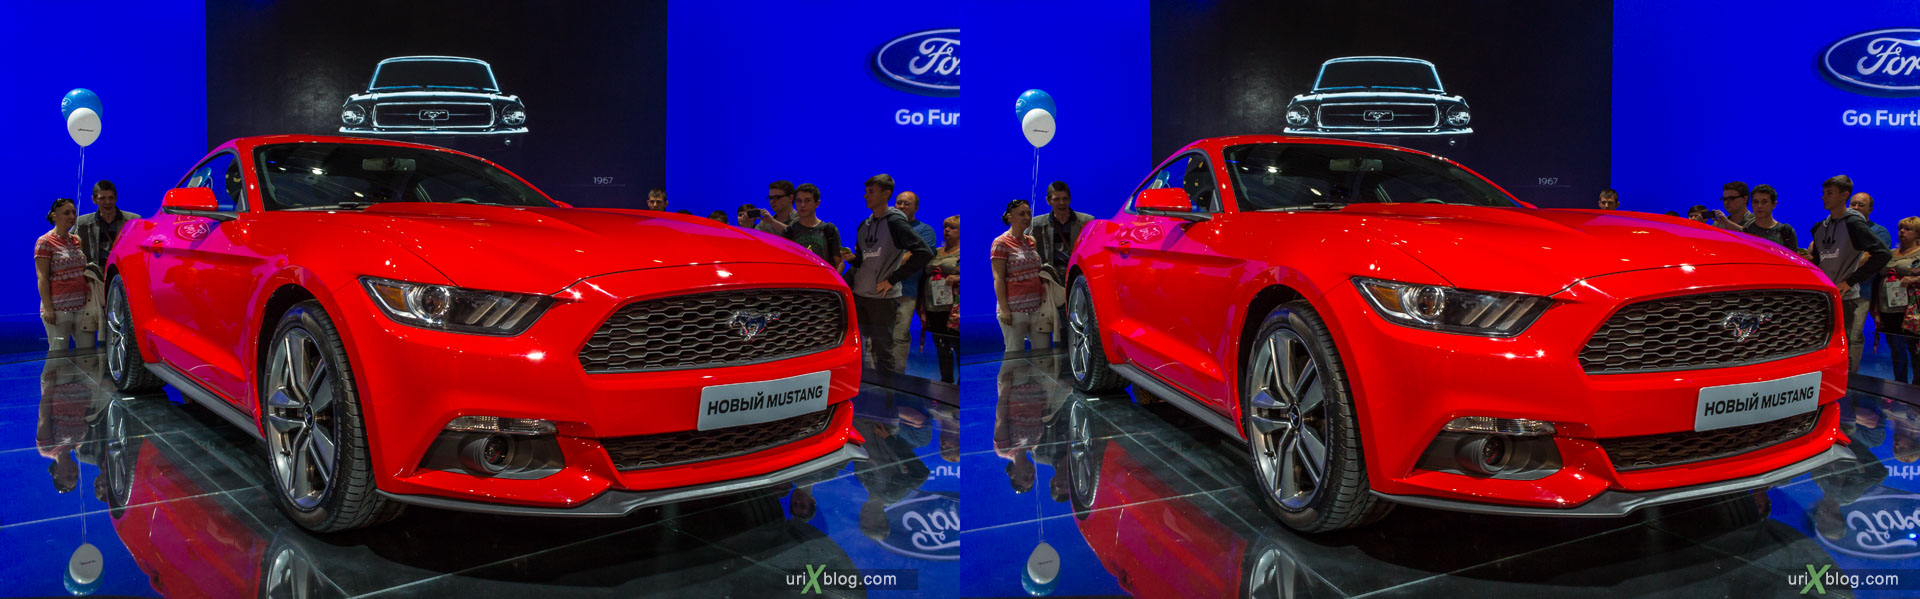 New Mustang, Moscow International Automobile Salon 2014, MIAS 2014, girls, models, Crocus Expo, Moscow, Russia, 3D, stereo pair, cross-eyed, crossview, cross view stereo pair, stereoscopic, 2014